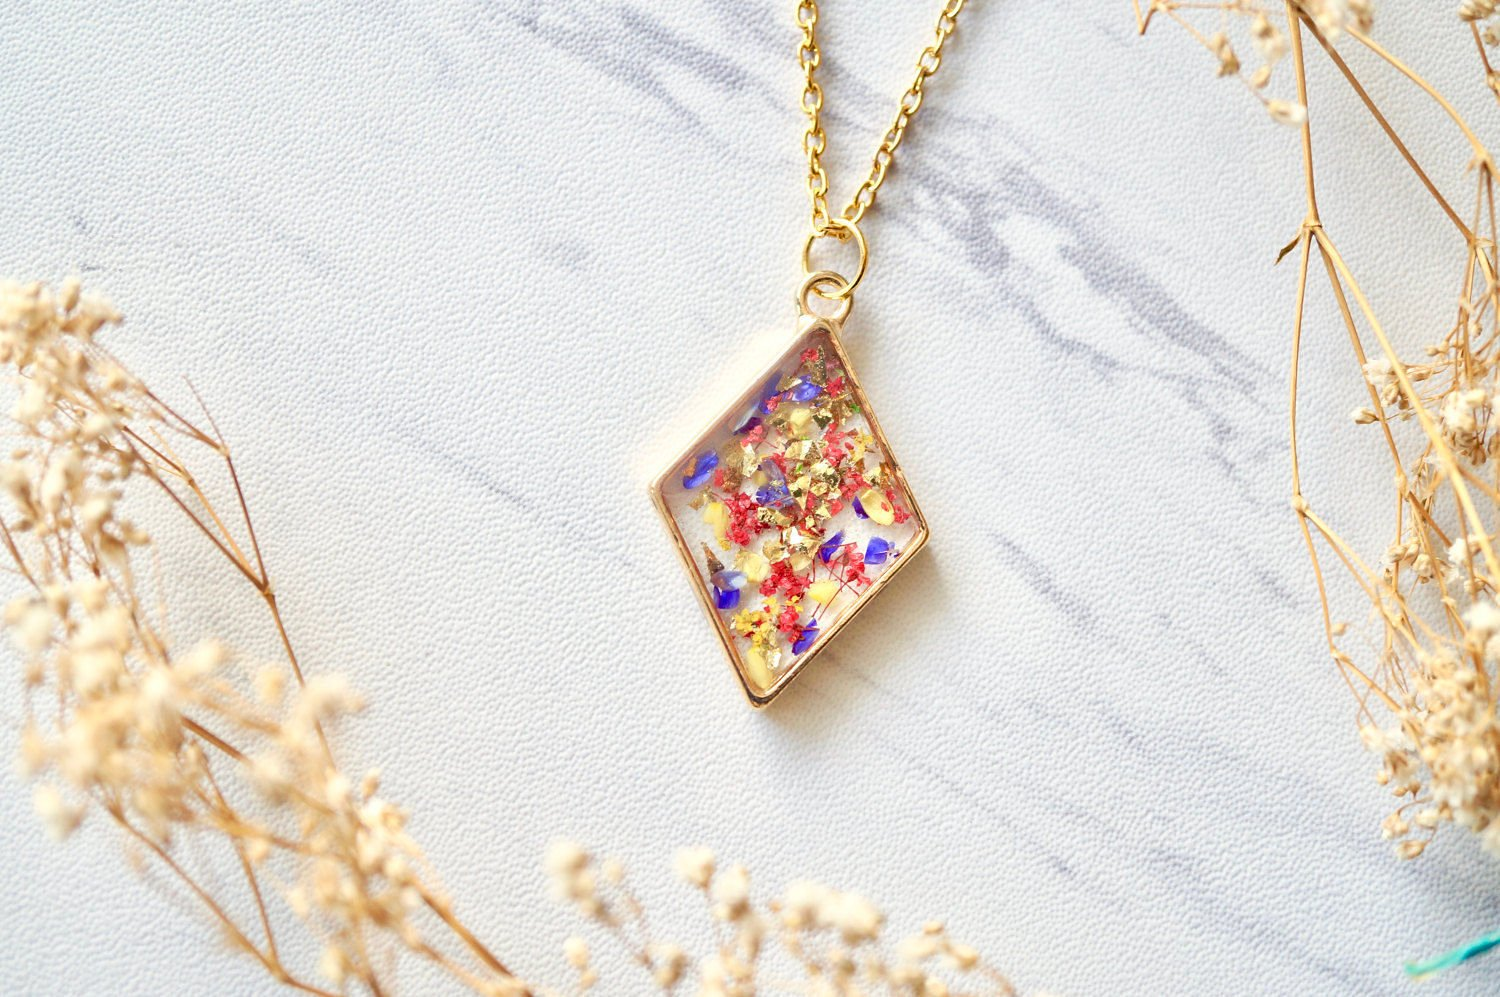 Real Pressed Flower and Resin Necklace Gold Diamond in Yellow, Red, Purple, Gold Foil